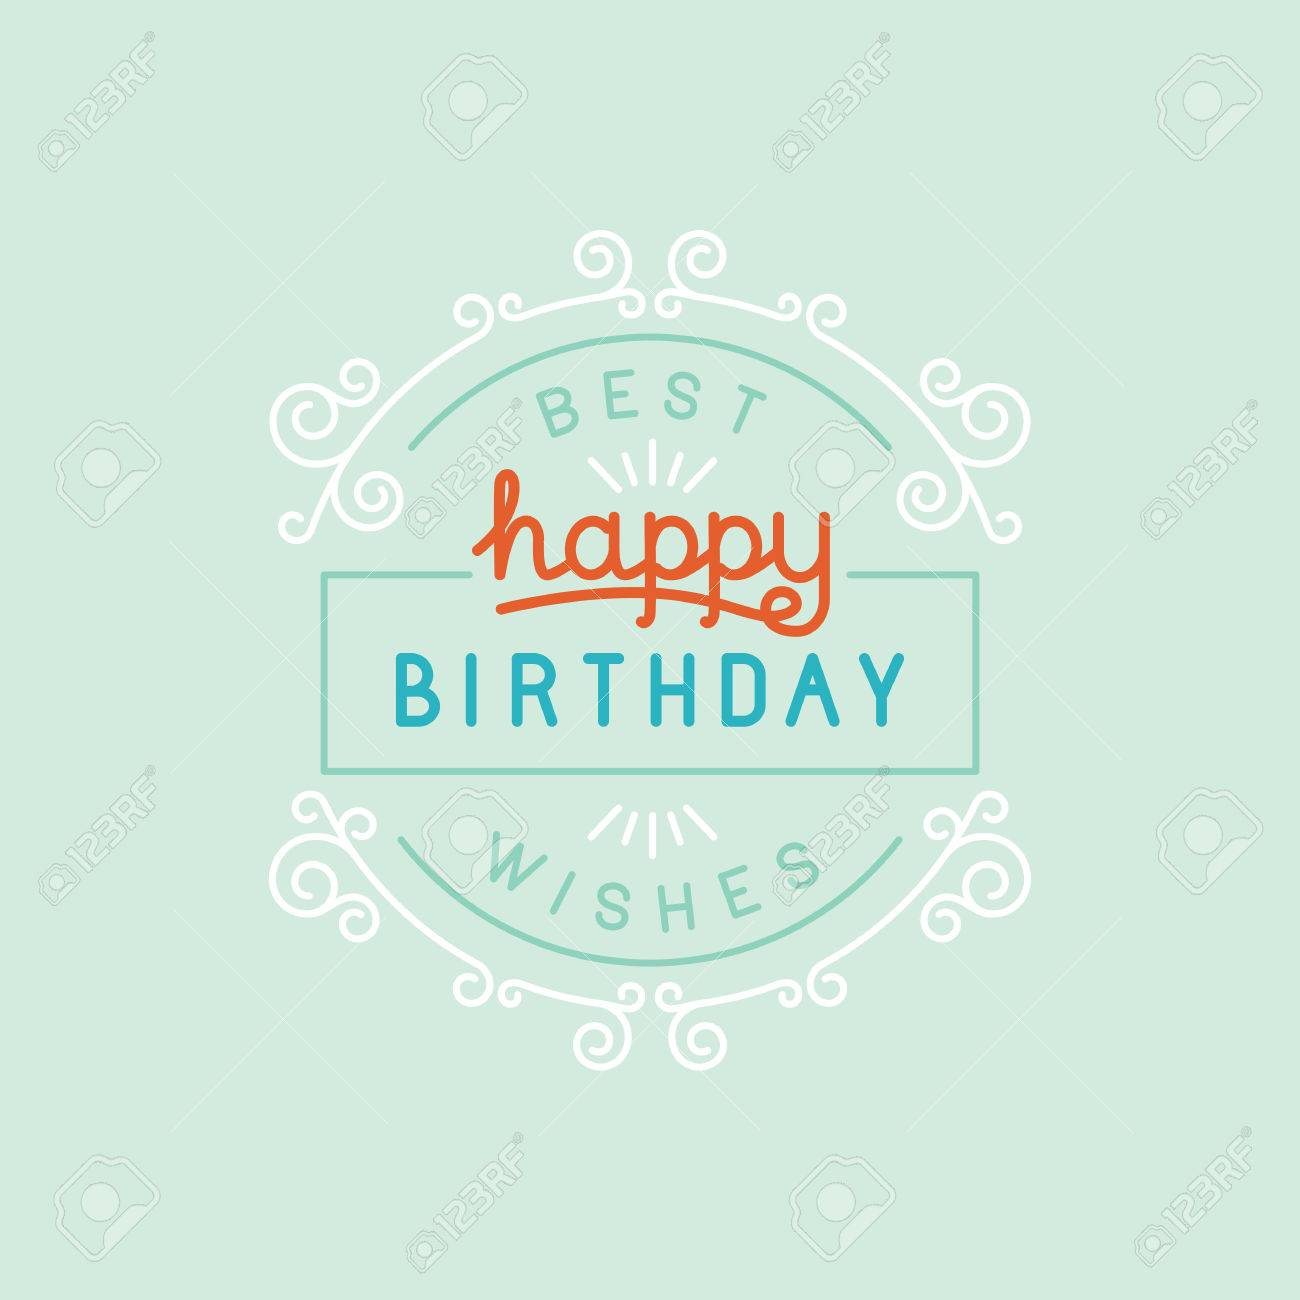 Vector Happy Birthday Greeting Card Design In Linear Style With